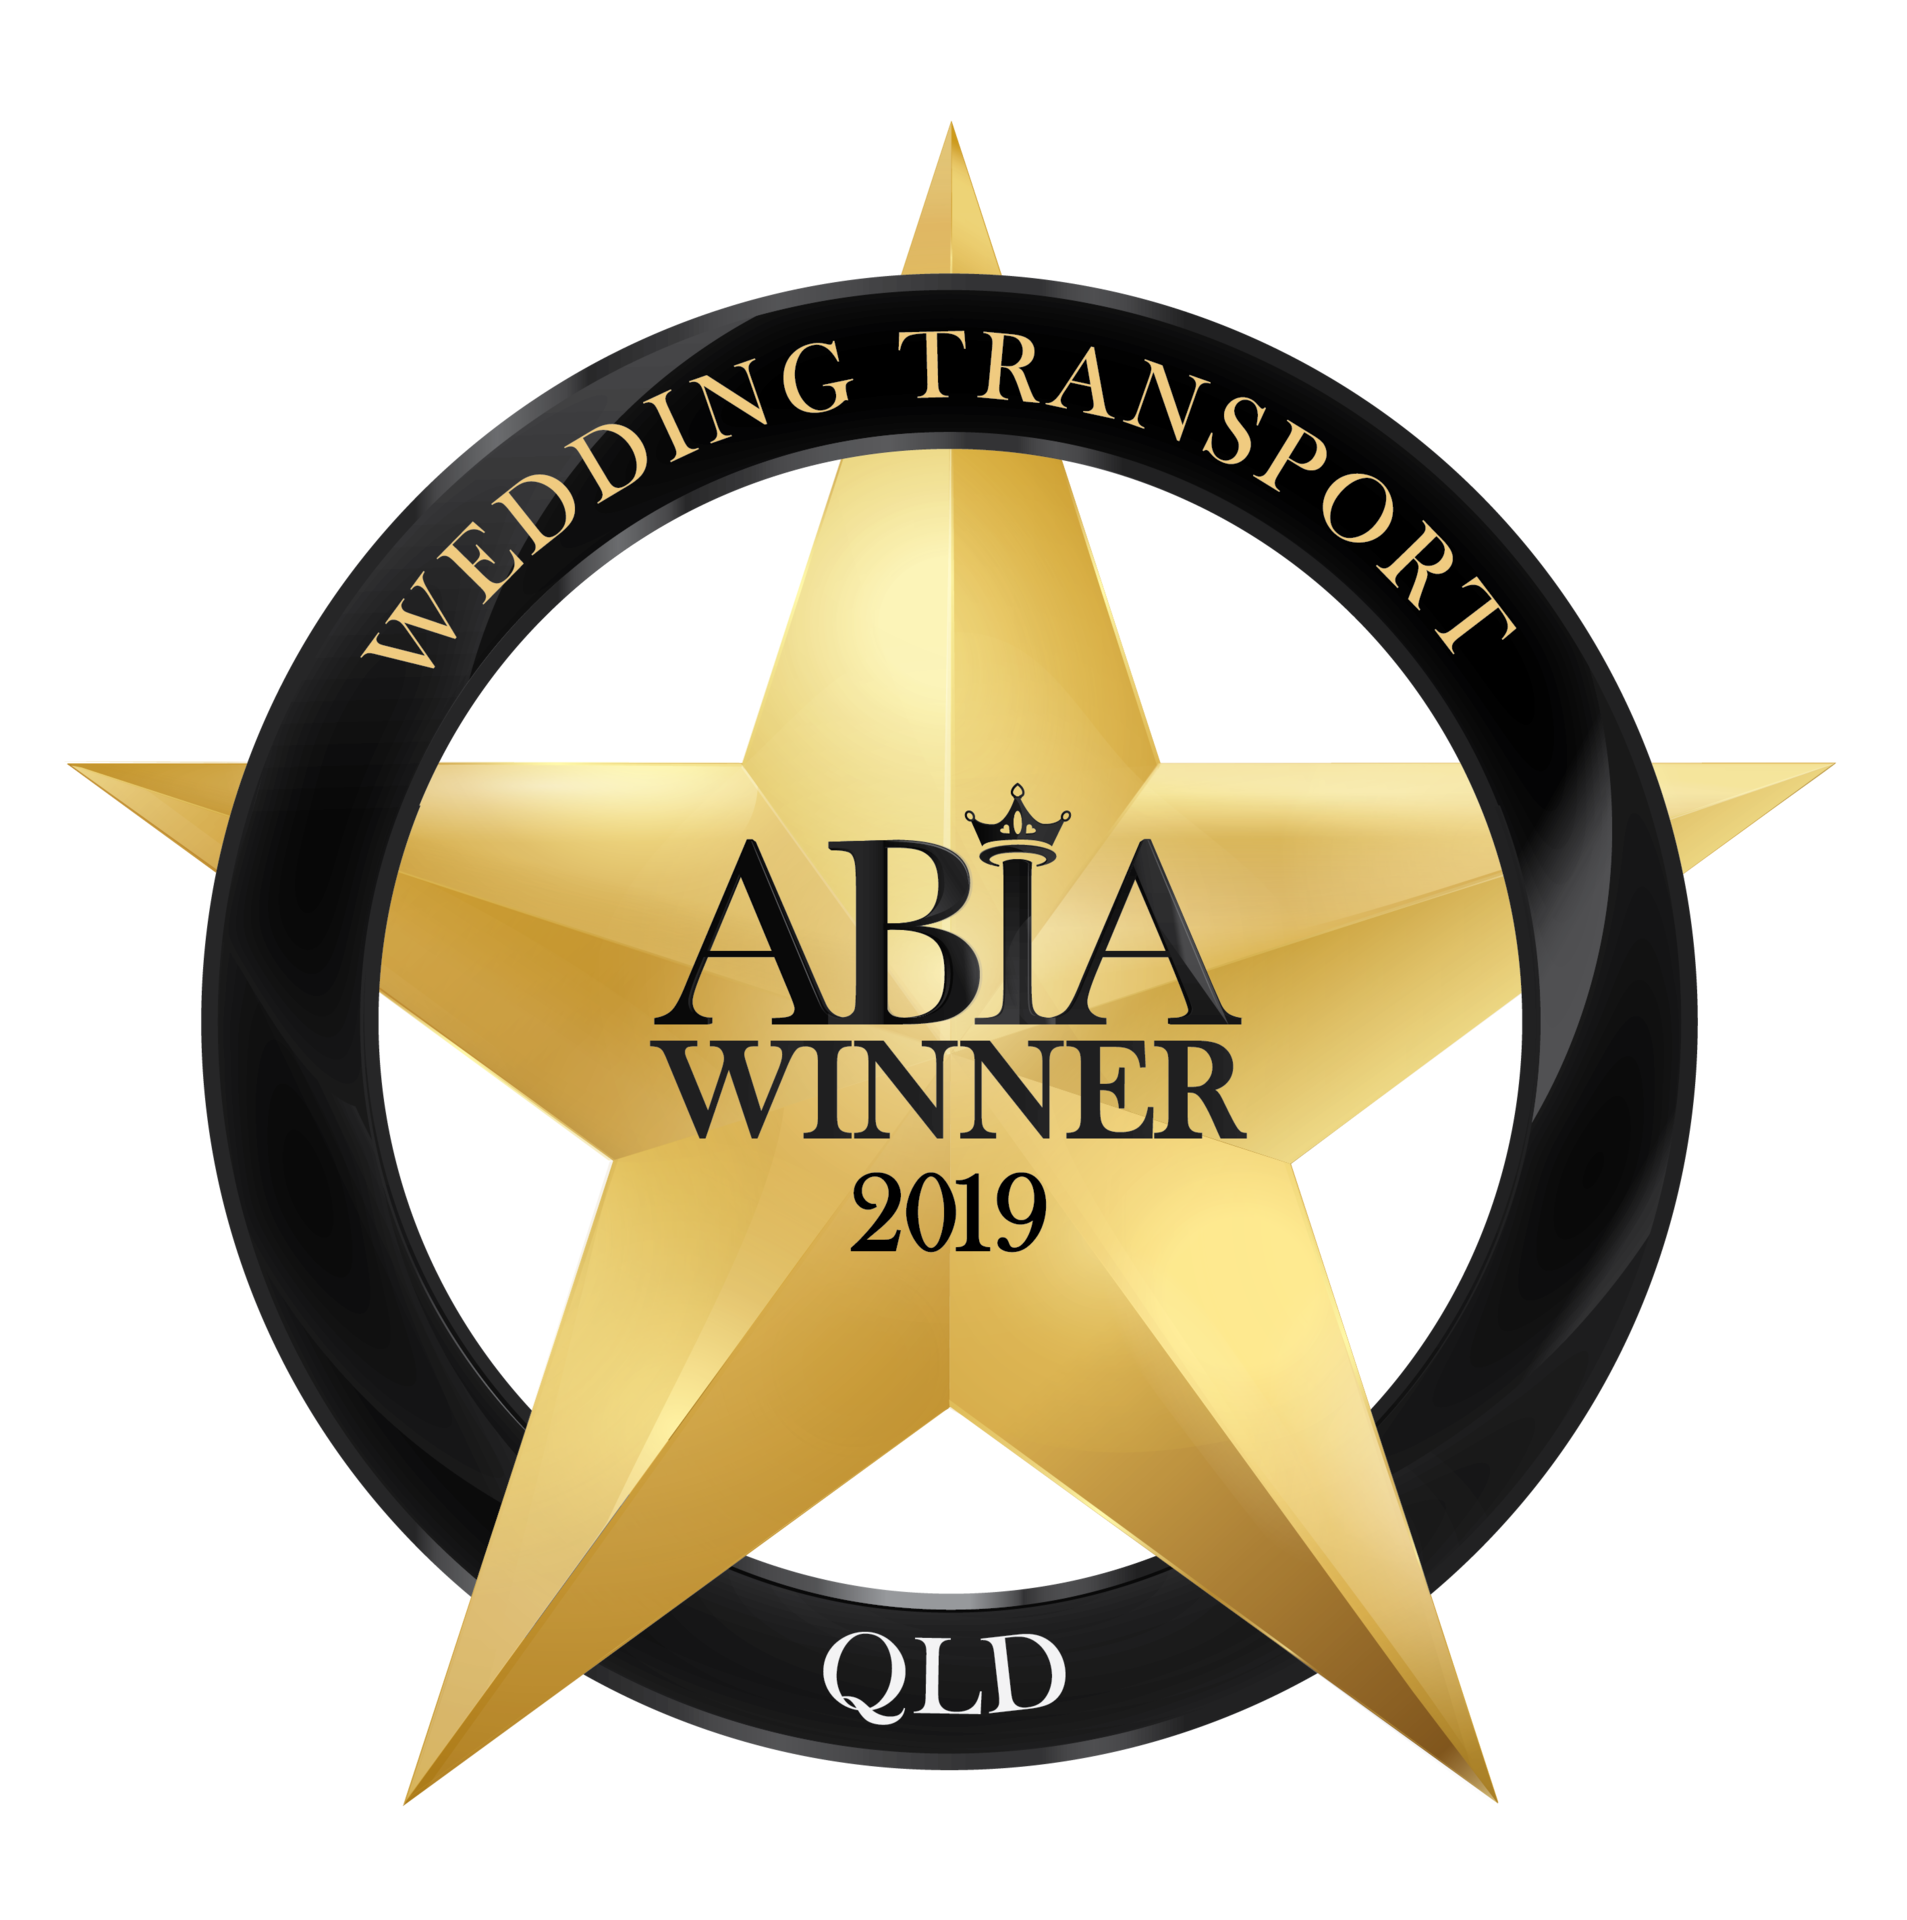 ABIA Winner - Best Wedding Transport